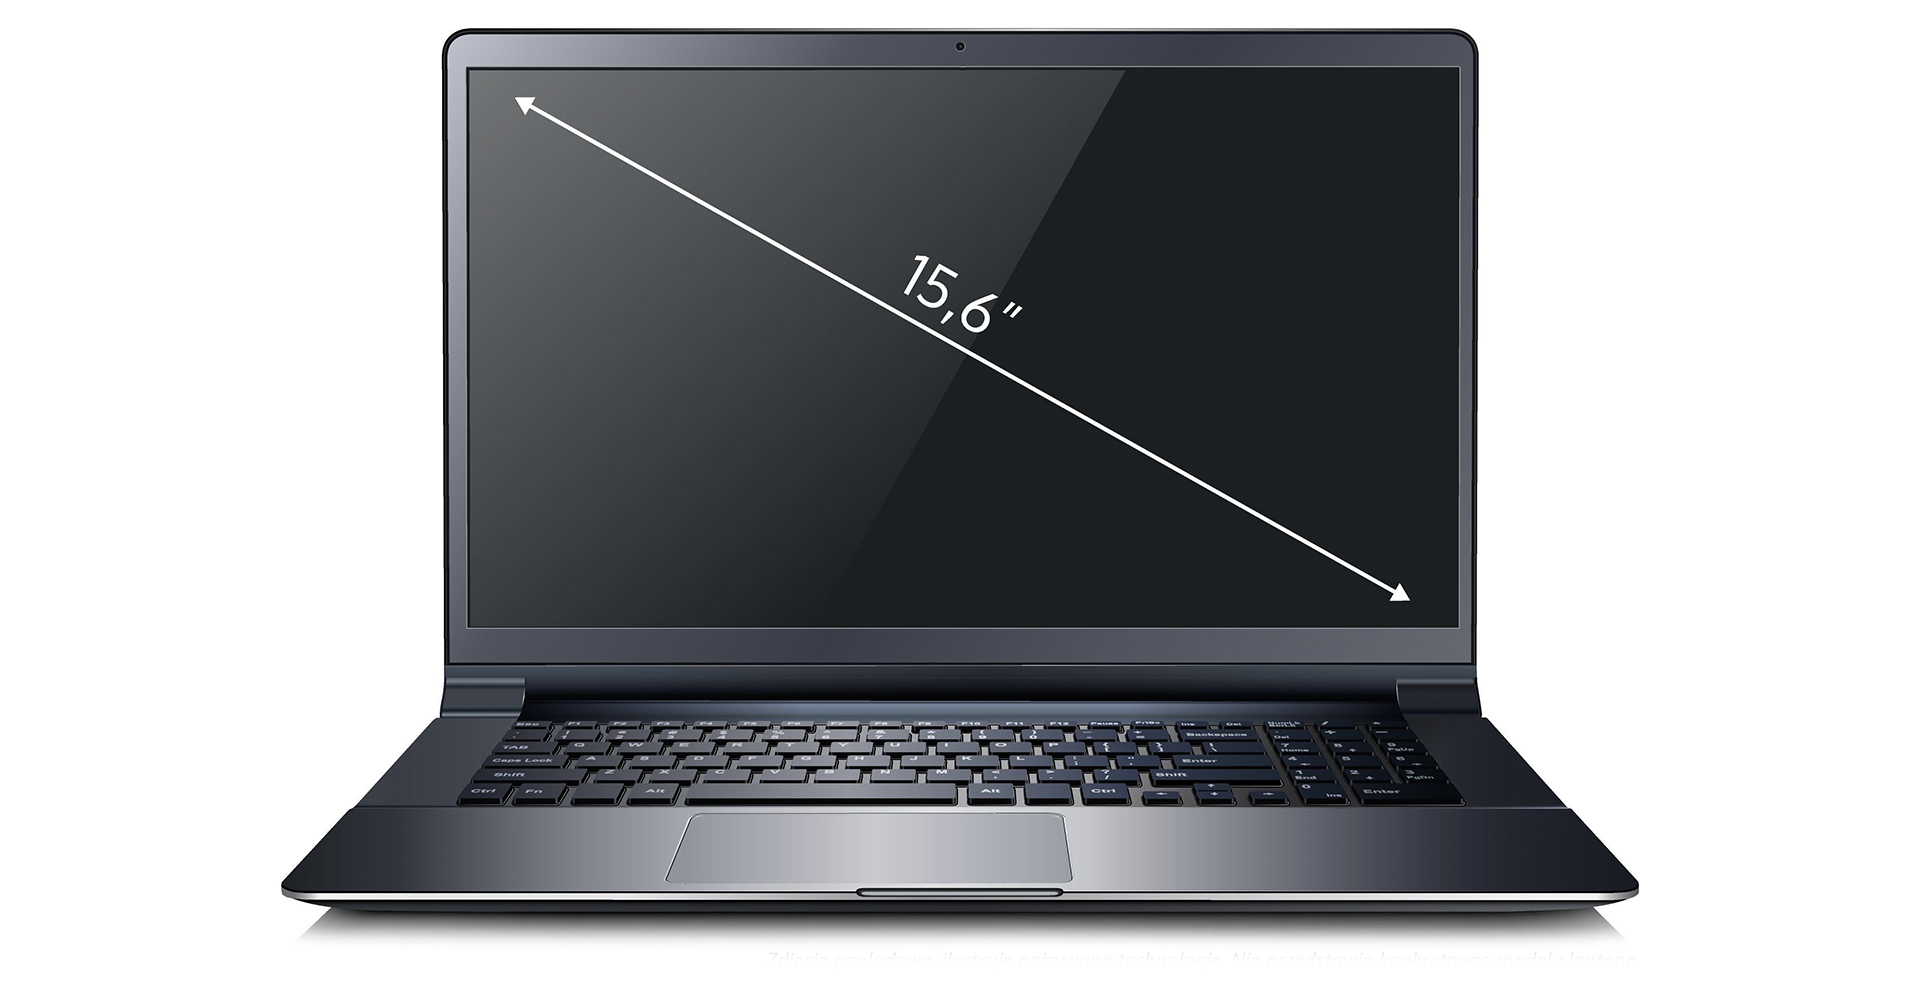 Dell Latitude 3590 i7-8550U 8GB 256GB Win10P                             Диагональ 15.6 дюйма